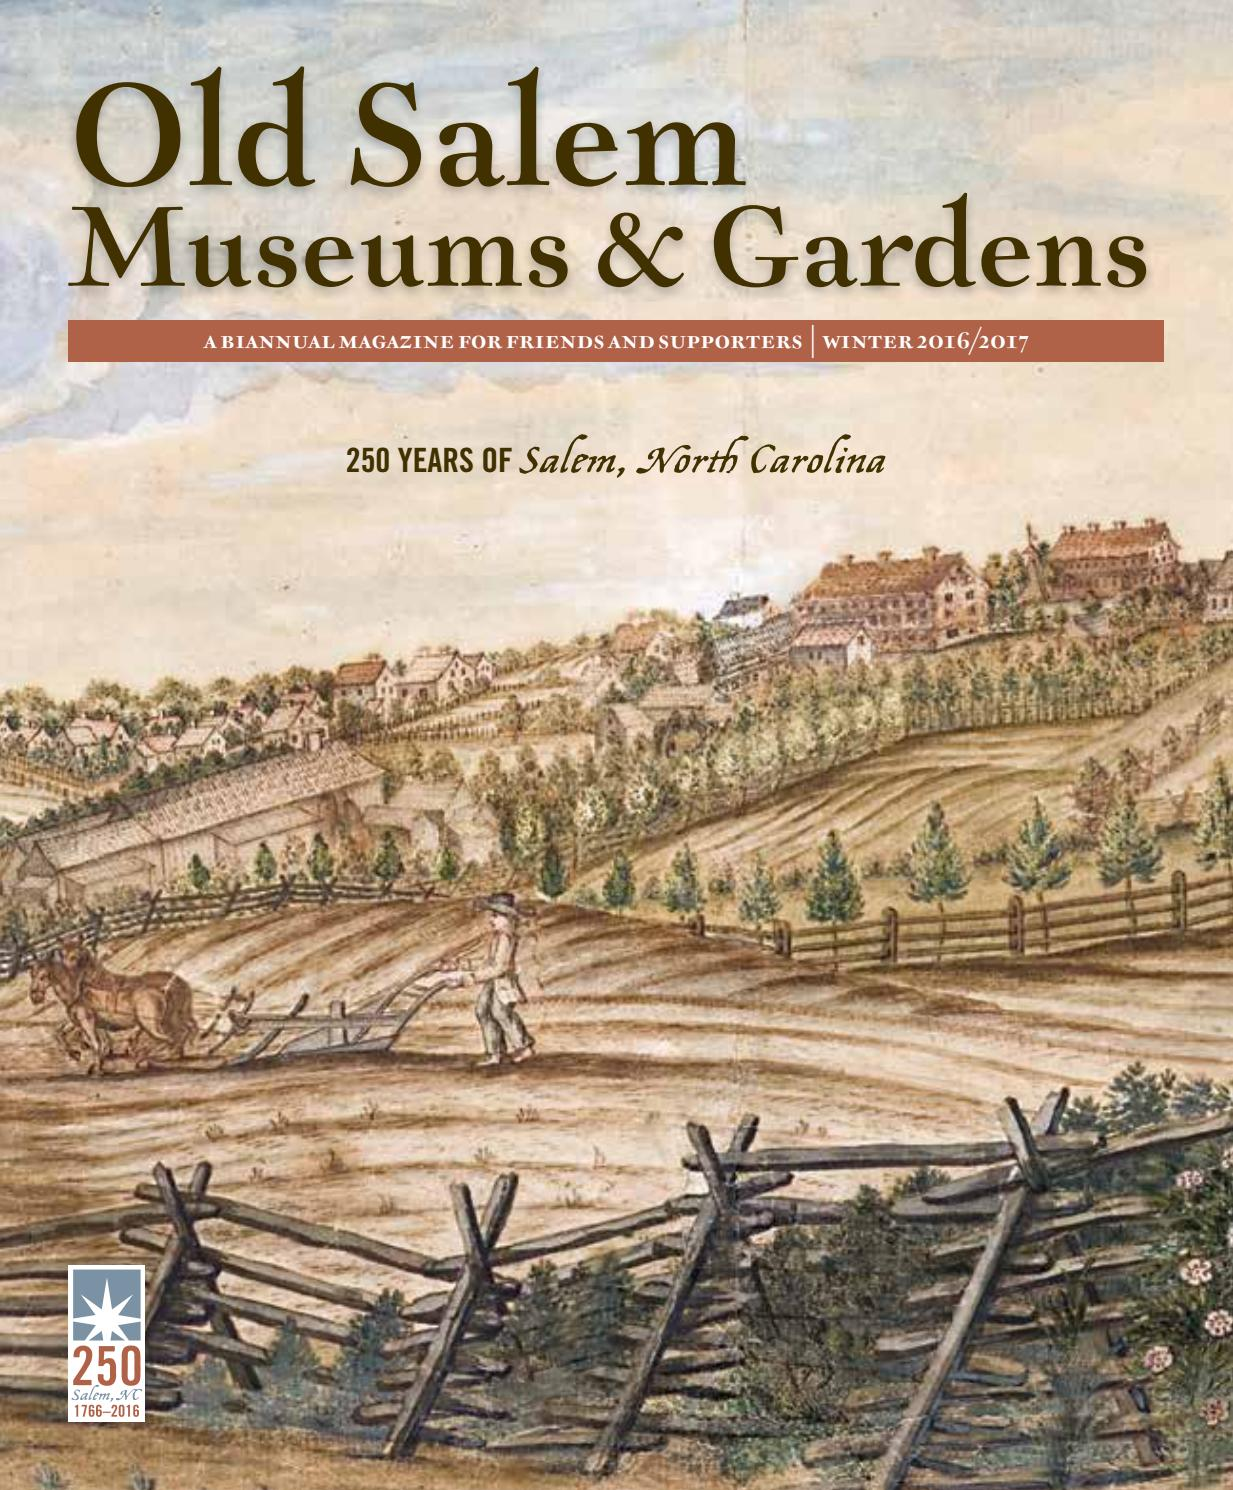 Old Salem Museums Gardens Magazine By Old Salem Museums Gardens Issuu